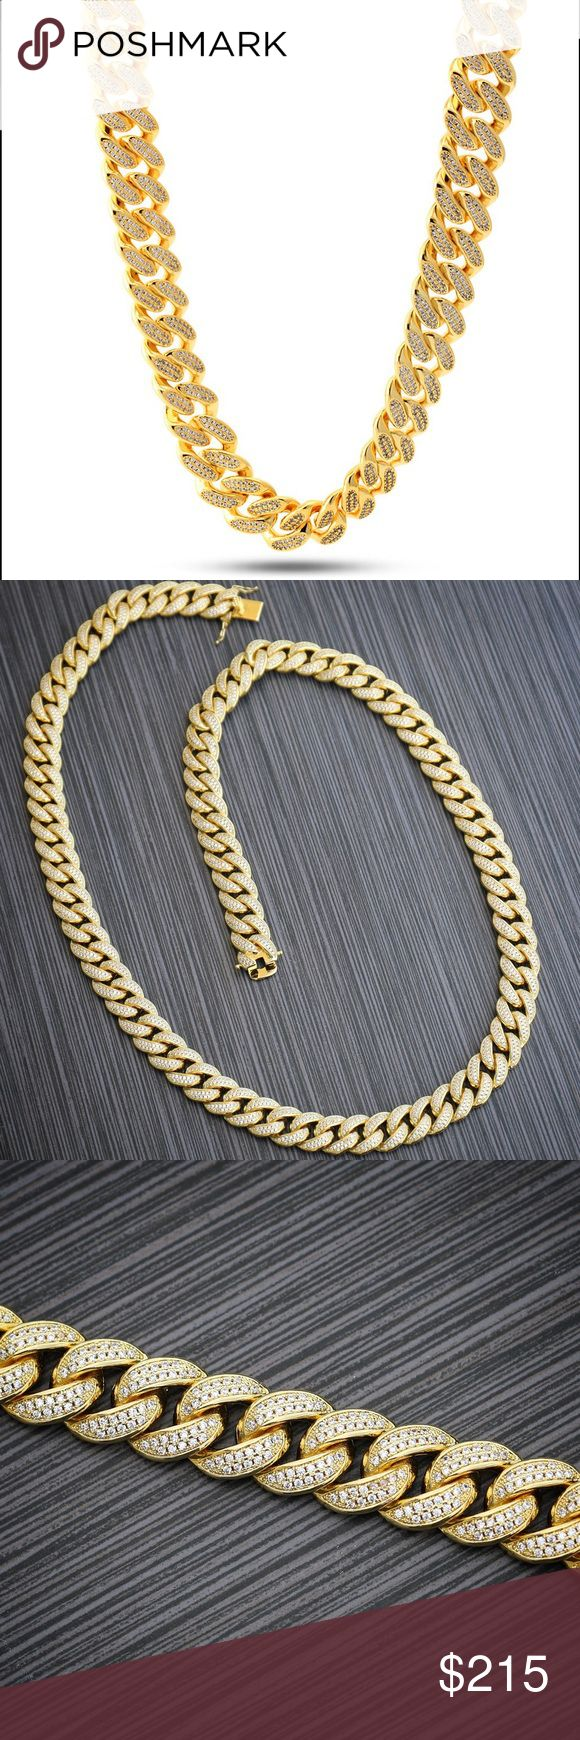 Hip Hop 14k Gold Cuban Link Chain With Diamonds Men's Hip Hop Gold Cuban Link Chain With Diamonds  High quality pvp 14k gold plated over brass. Fully iced out with 2row lab simulated diamonds. Chain width is 15mm length is 30 inches Includes clasp that lock for a secure fit. Ts Verniel Accessories Jewelry